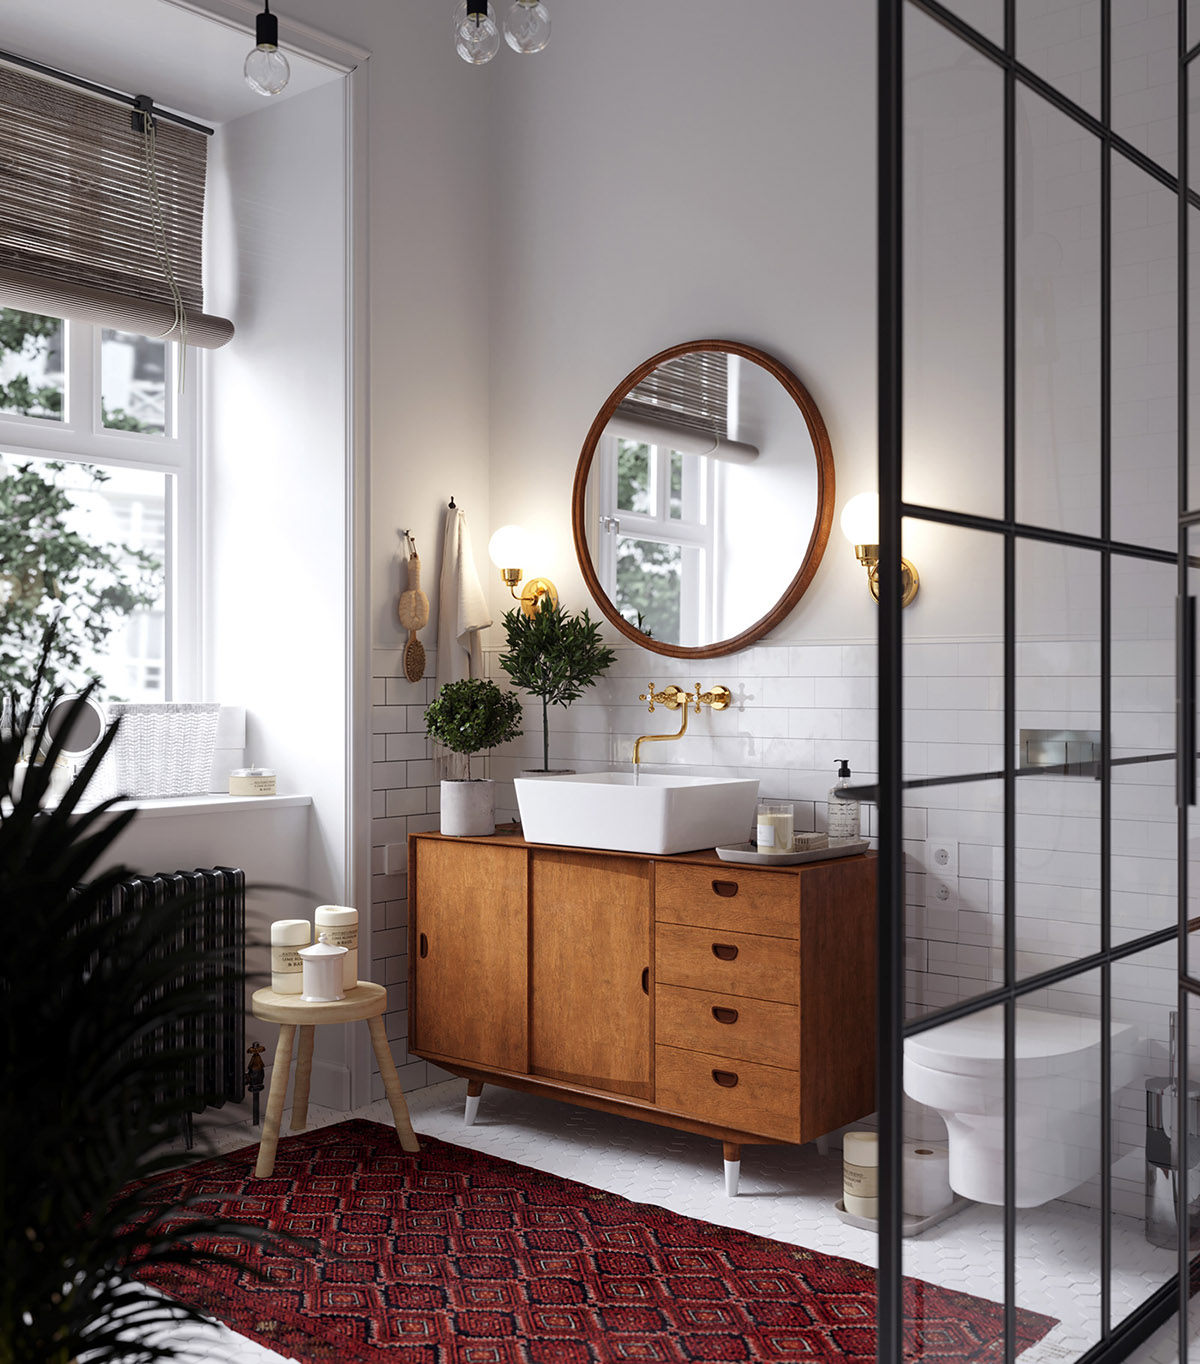 Earthy Eclectic Scandinavian Style Interior images 23